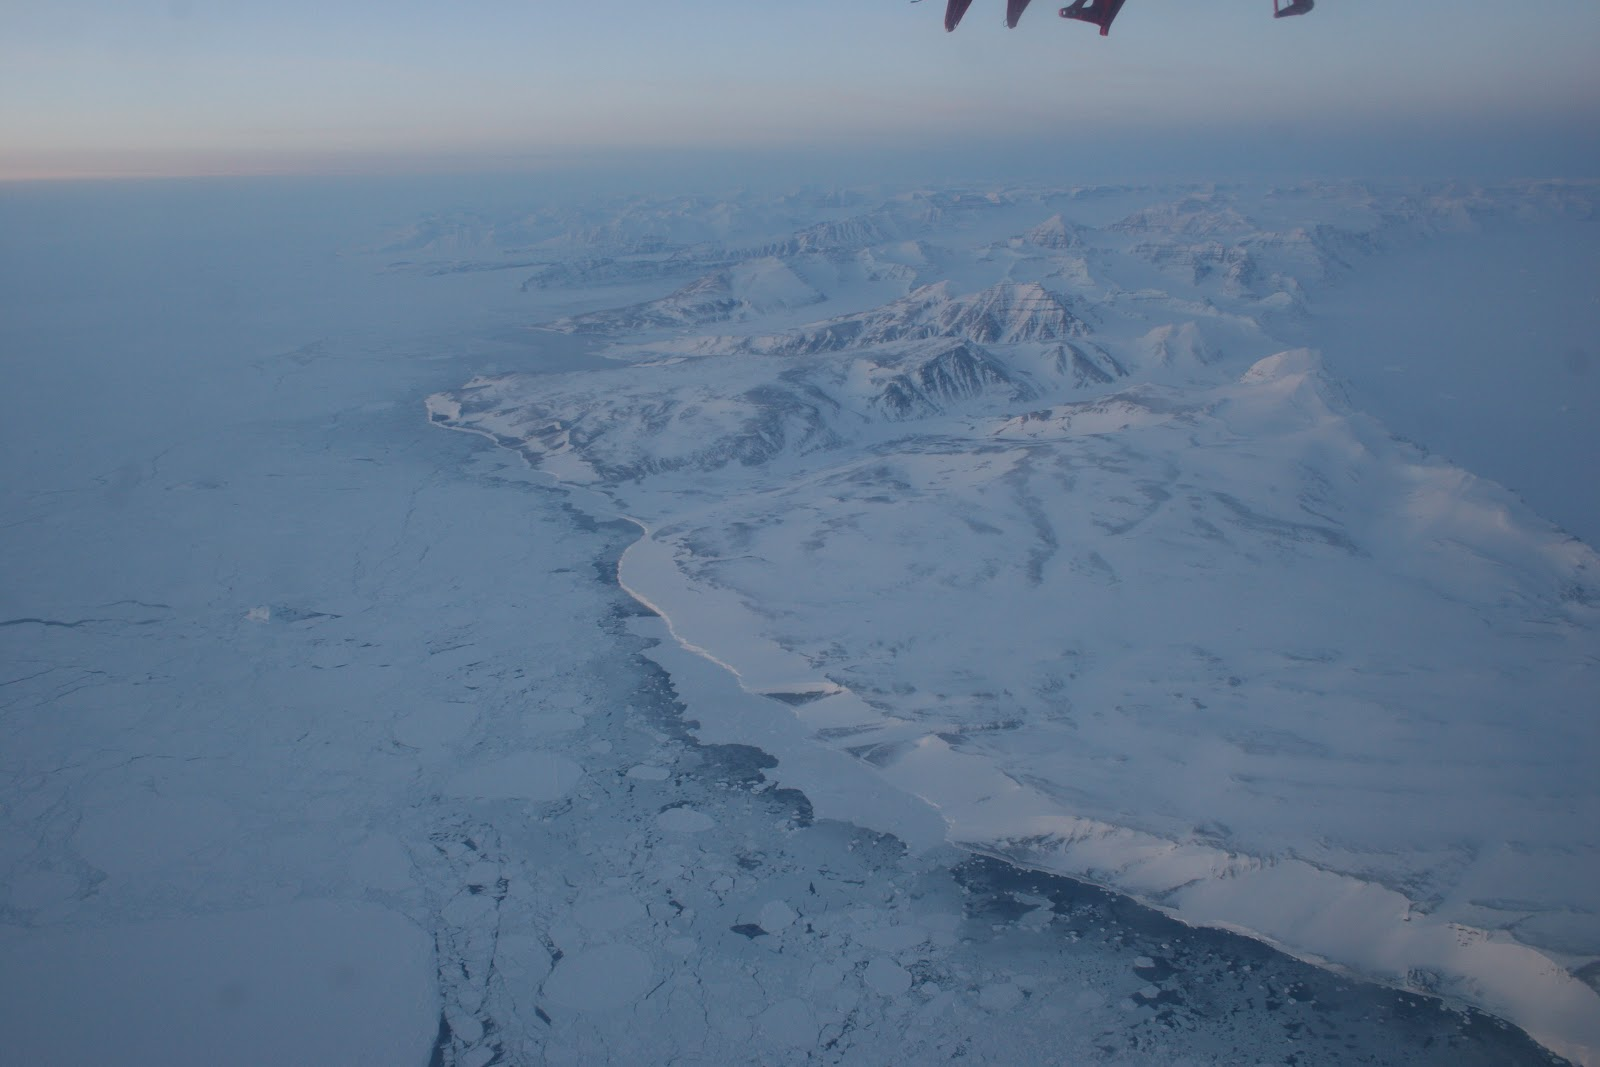 The Eastern coast of Greenland. Sea ice to the left, a snowy beach in the middle, and inland mountains to the right!